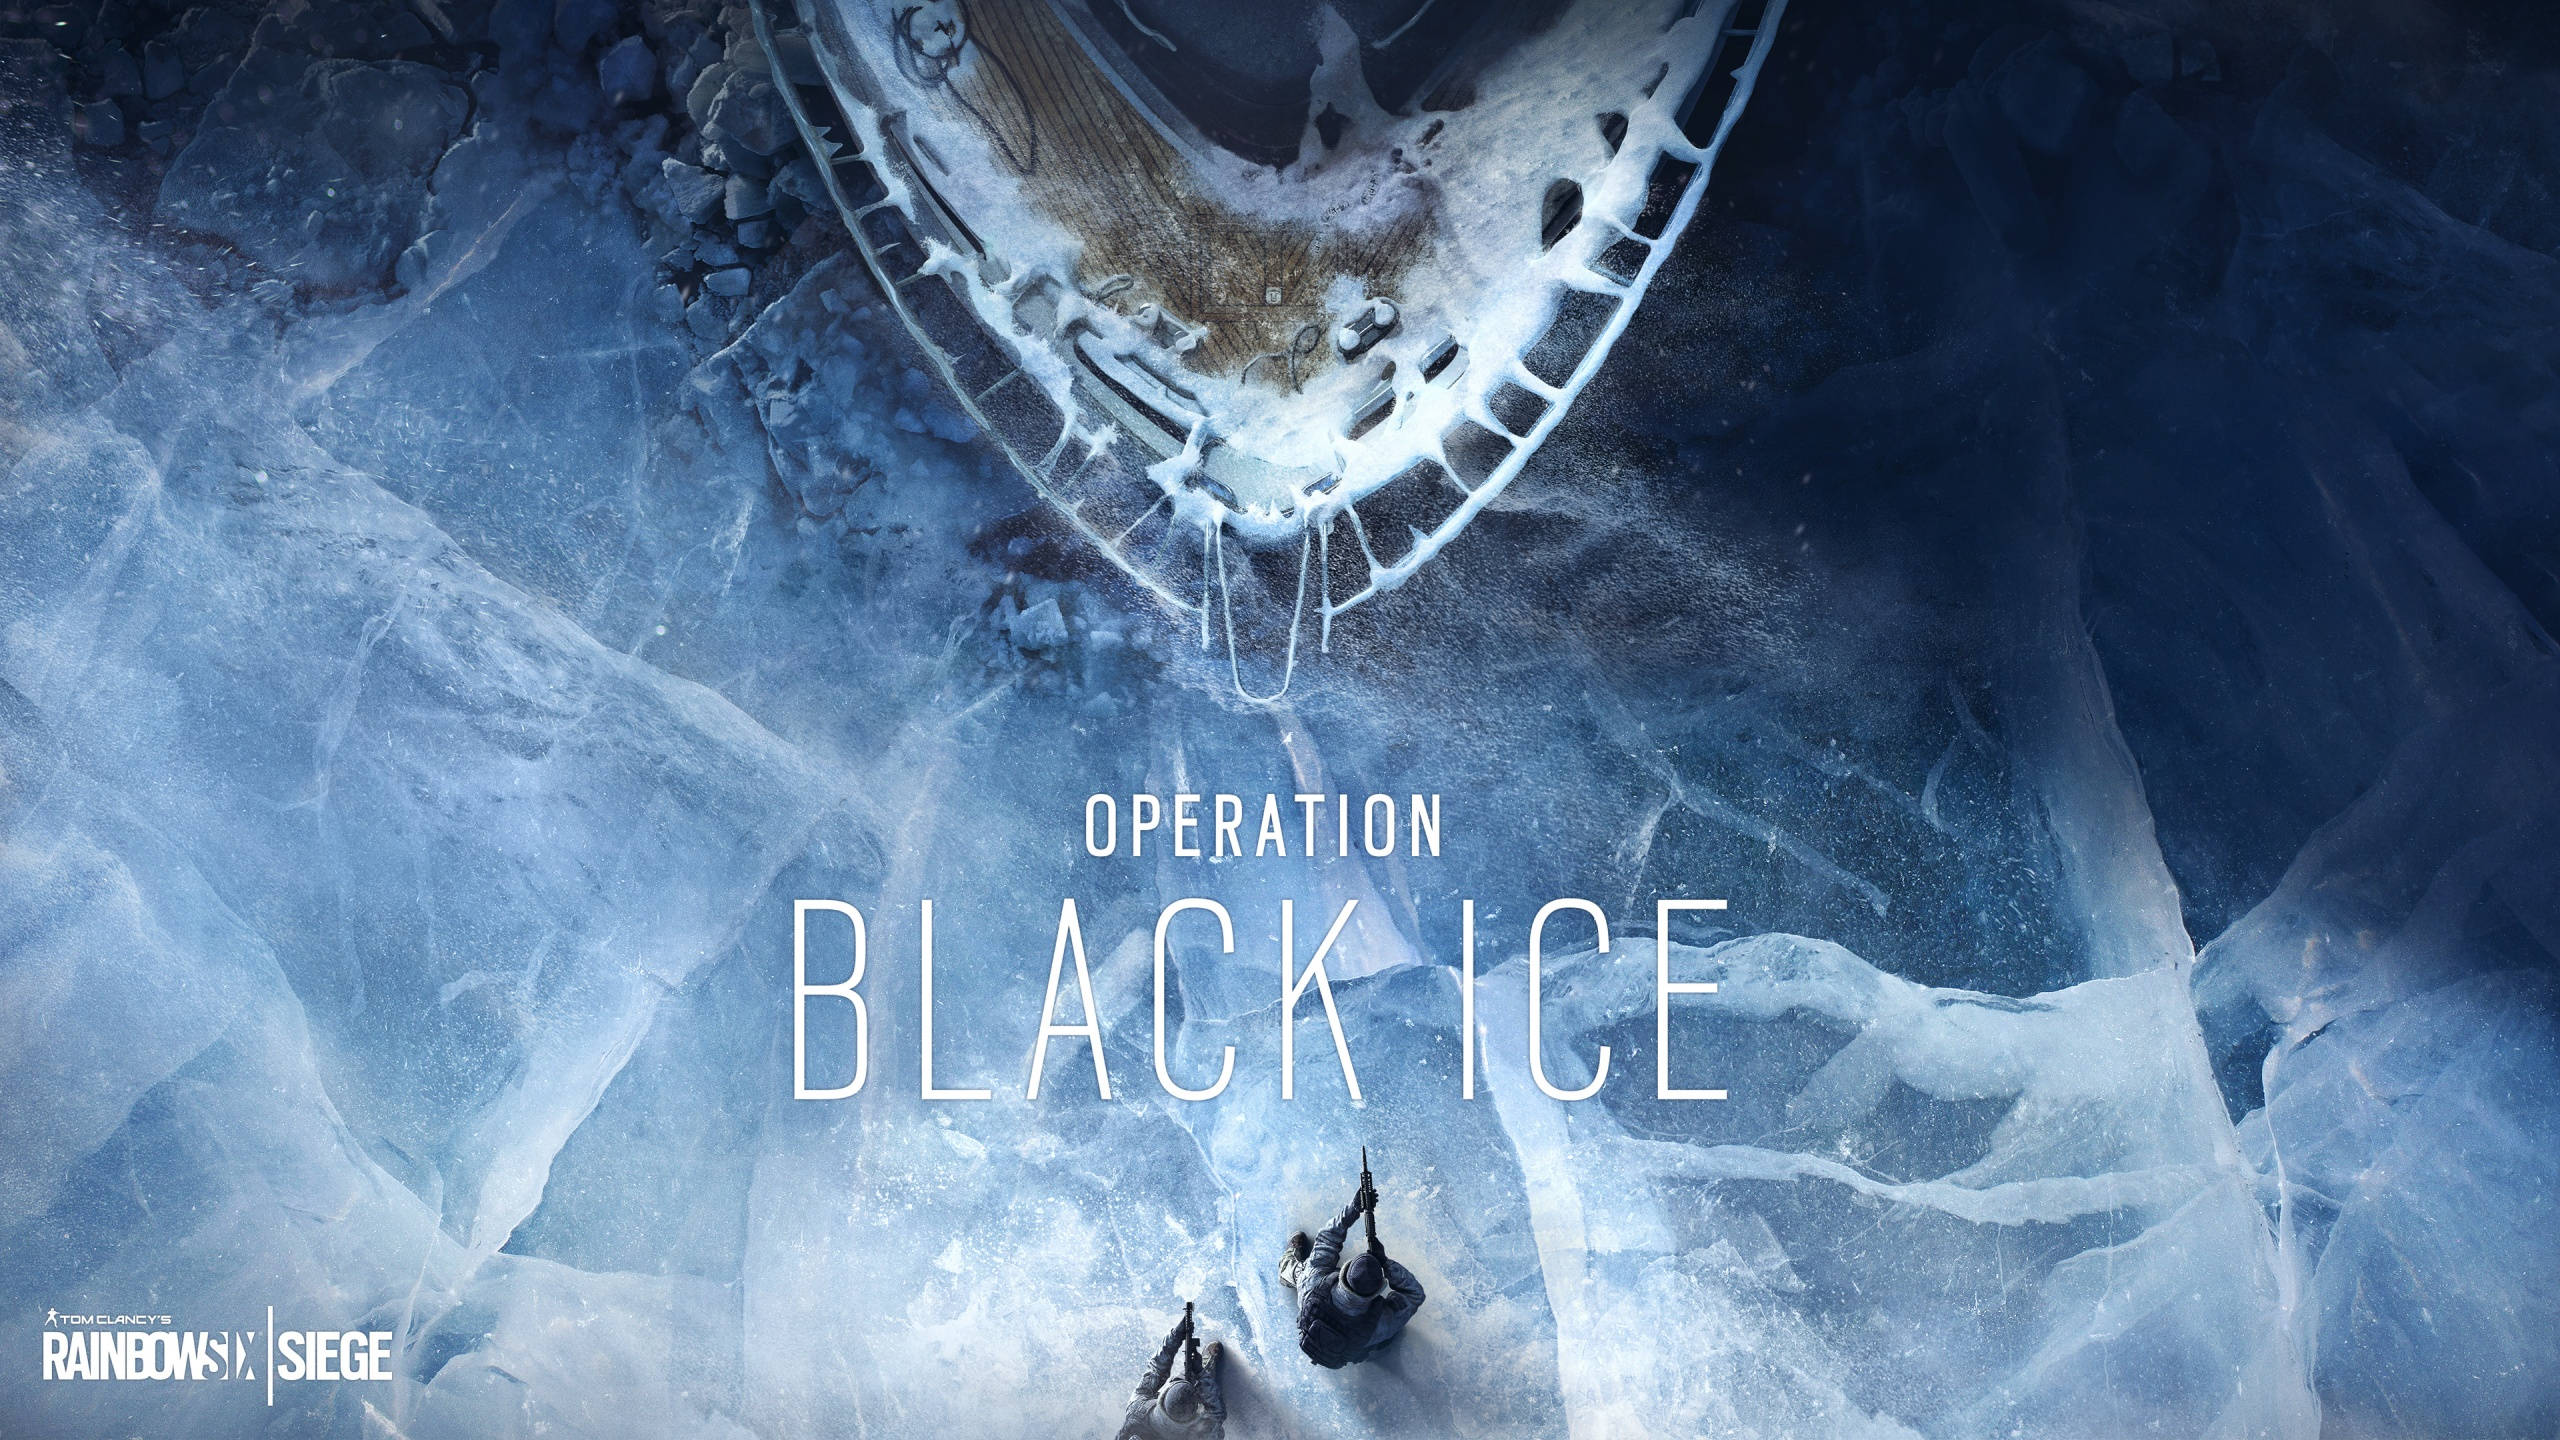 Rainbow Six Siege Operation Black Ice Wallpapers in jpg format for 2560x1440